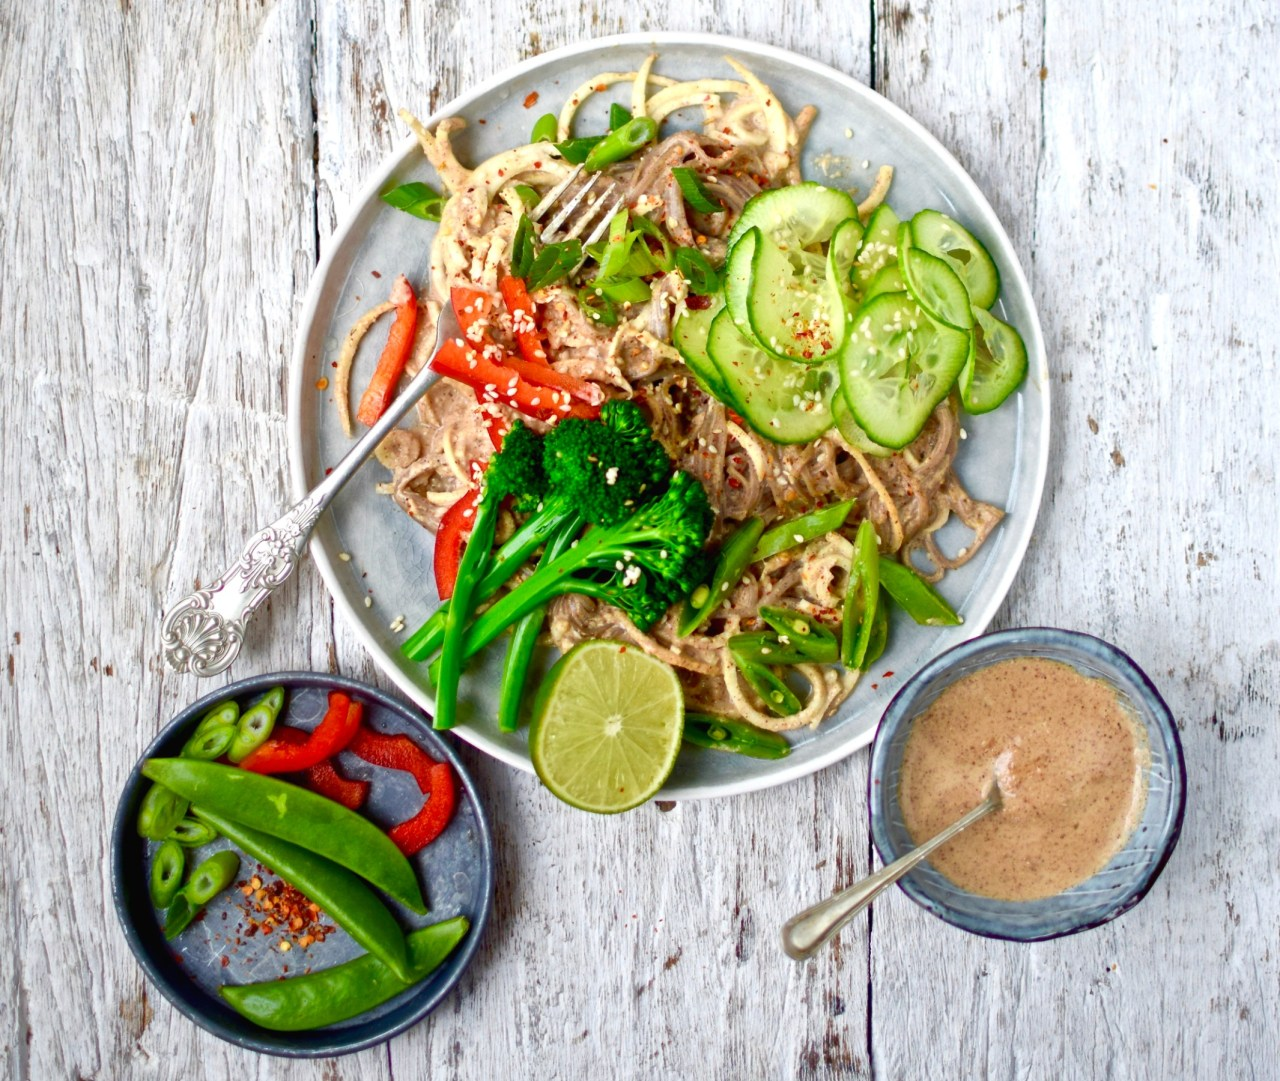 """Ring in the Year of the Rooster with this """"lucky"""" dish of spicy peanut butter and parsnip noodles. I can't promise health, wealth and happiness but I can pinky-swear that you will love this flavour-jammed quick, easy, lower carb vegan recipe. Adjust the spices to your liking."""